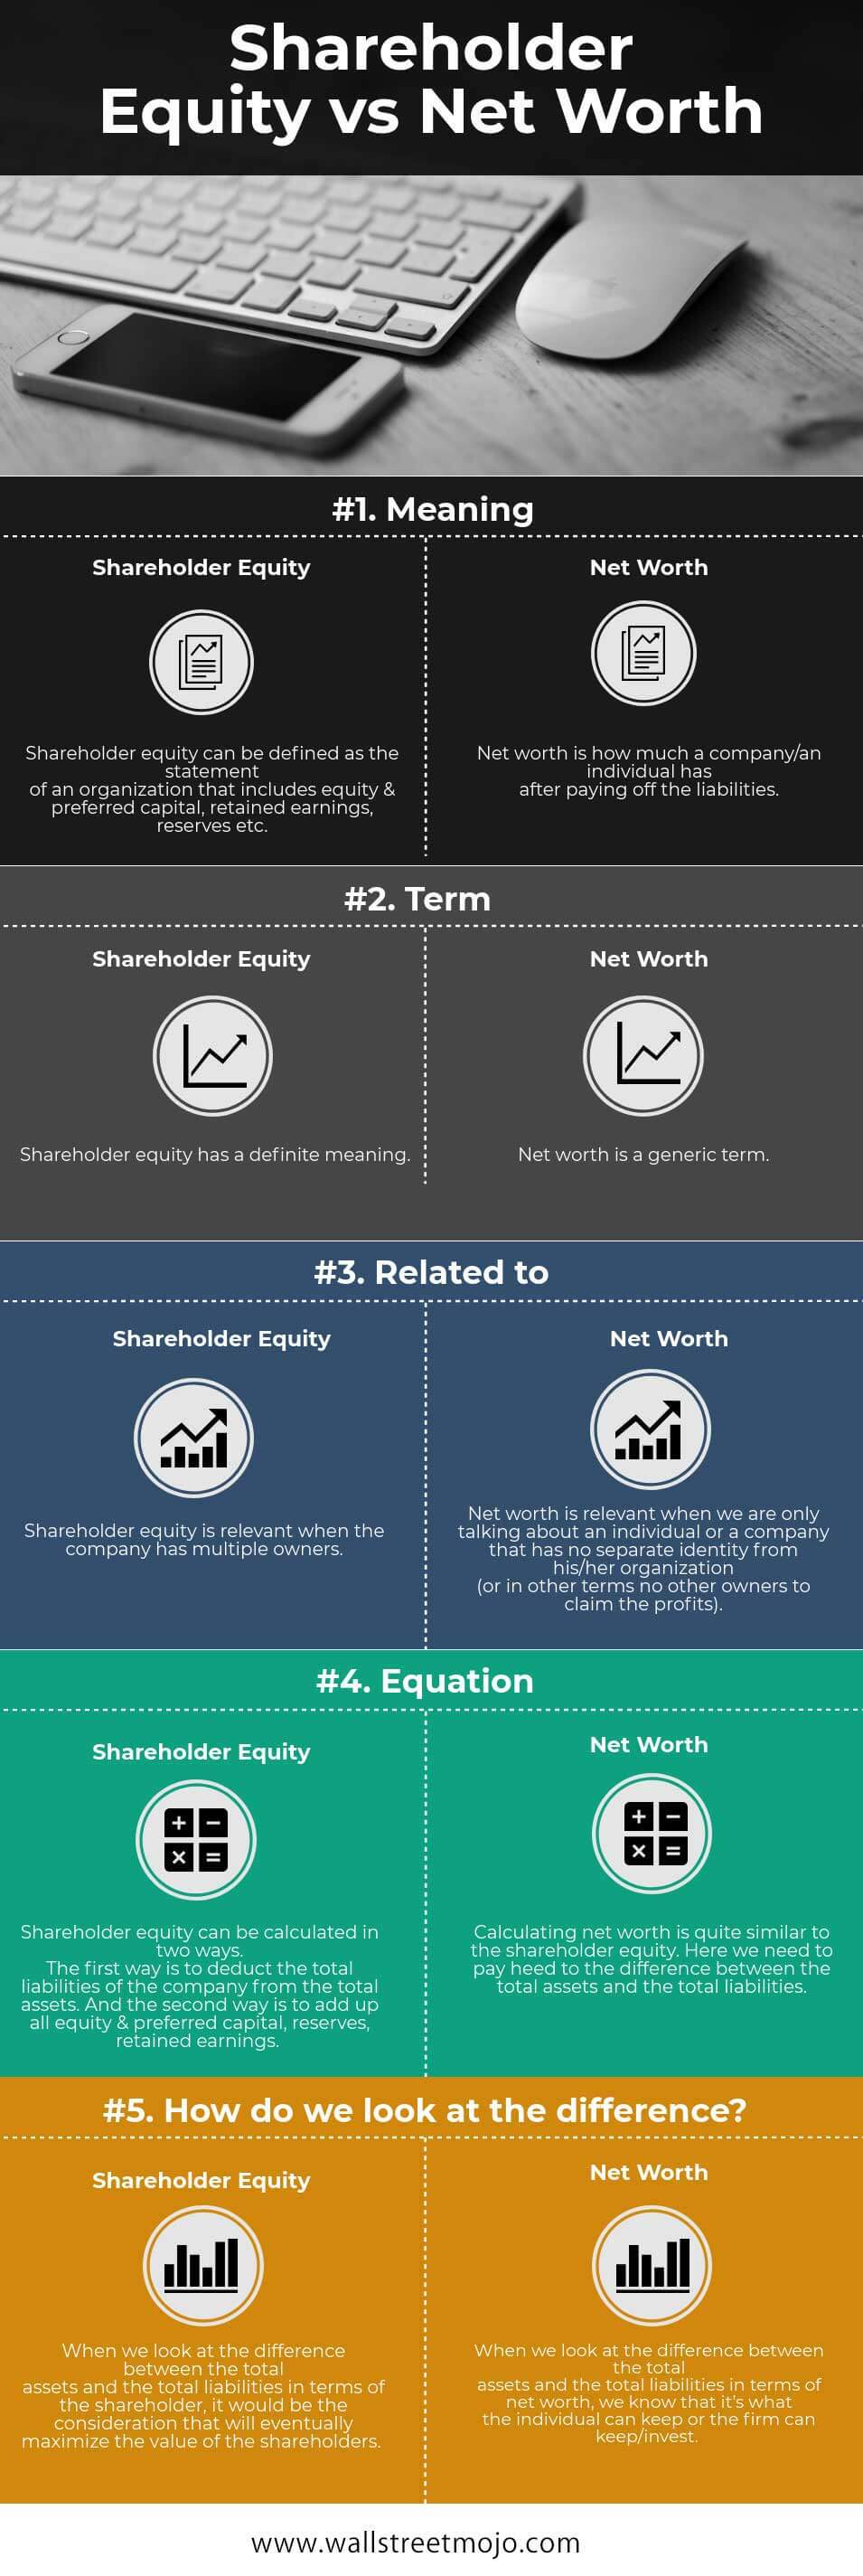 Shareholder Equity vs Net Worth